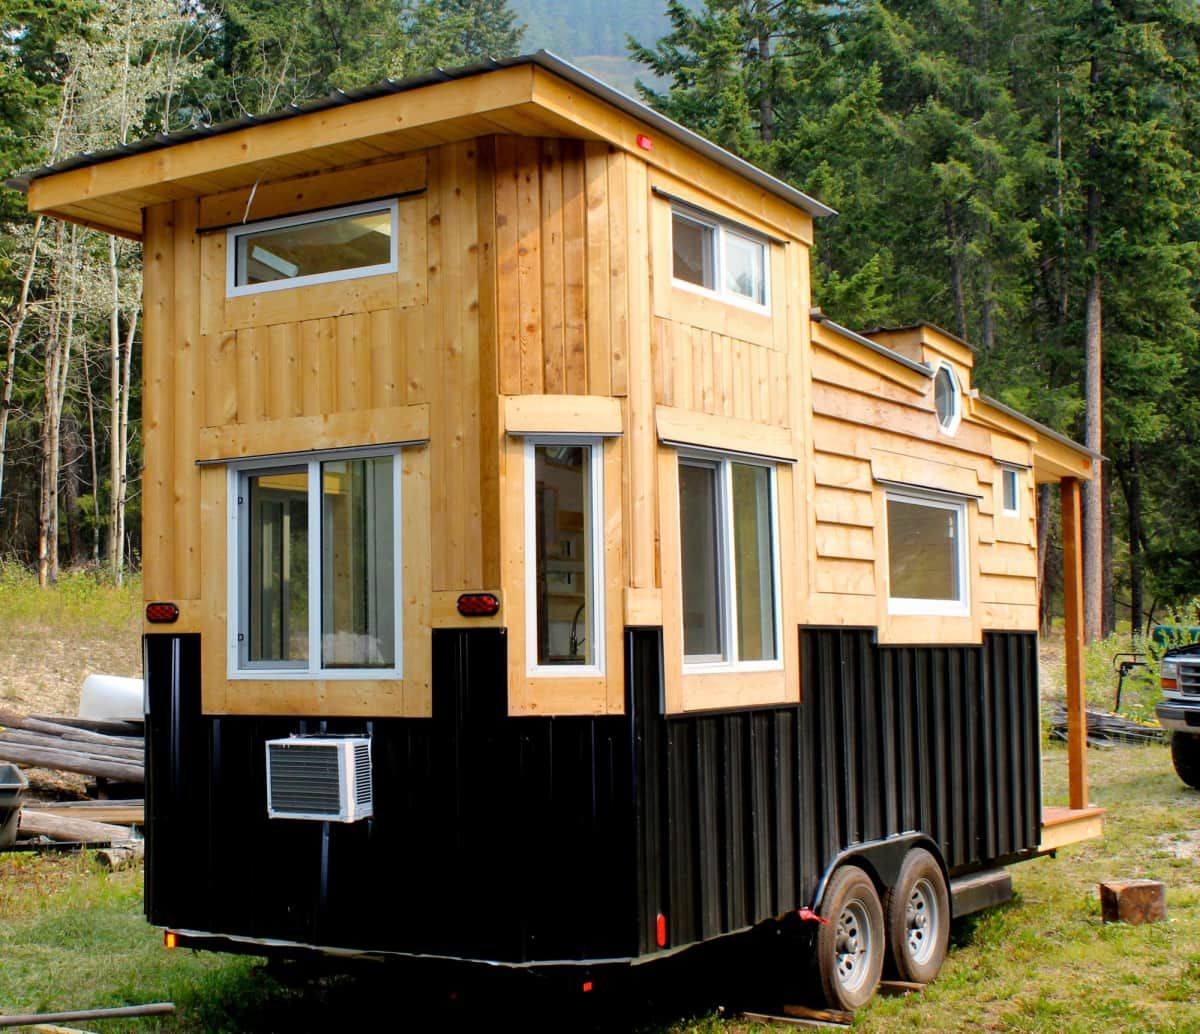 Pleasing Canadian Tiny Home Tiny House For Sale In Golden British Home Interior And Landscaping Ponolsignezvosmurscom